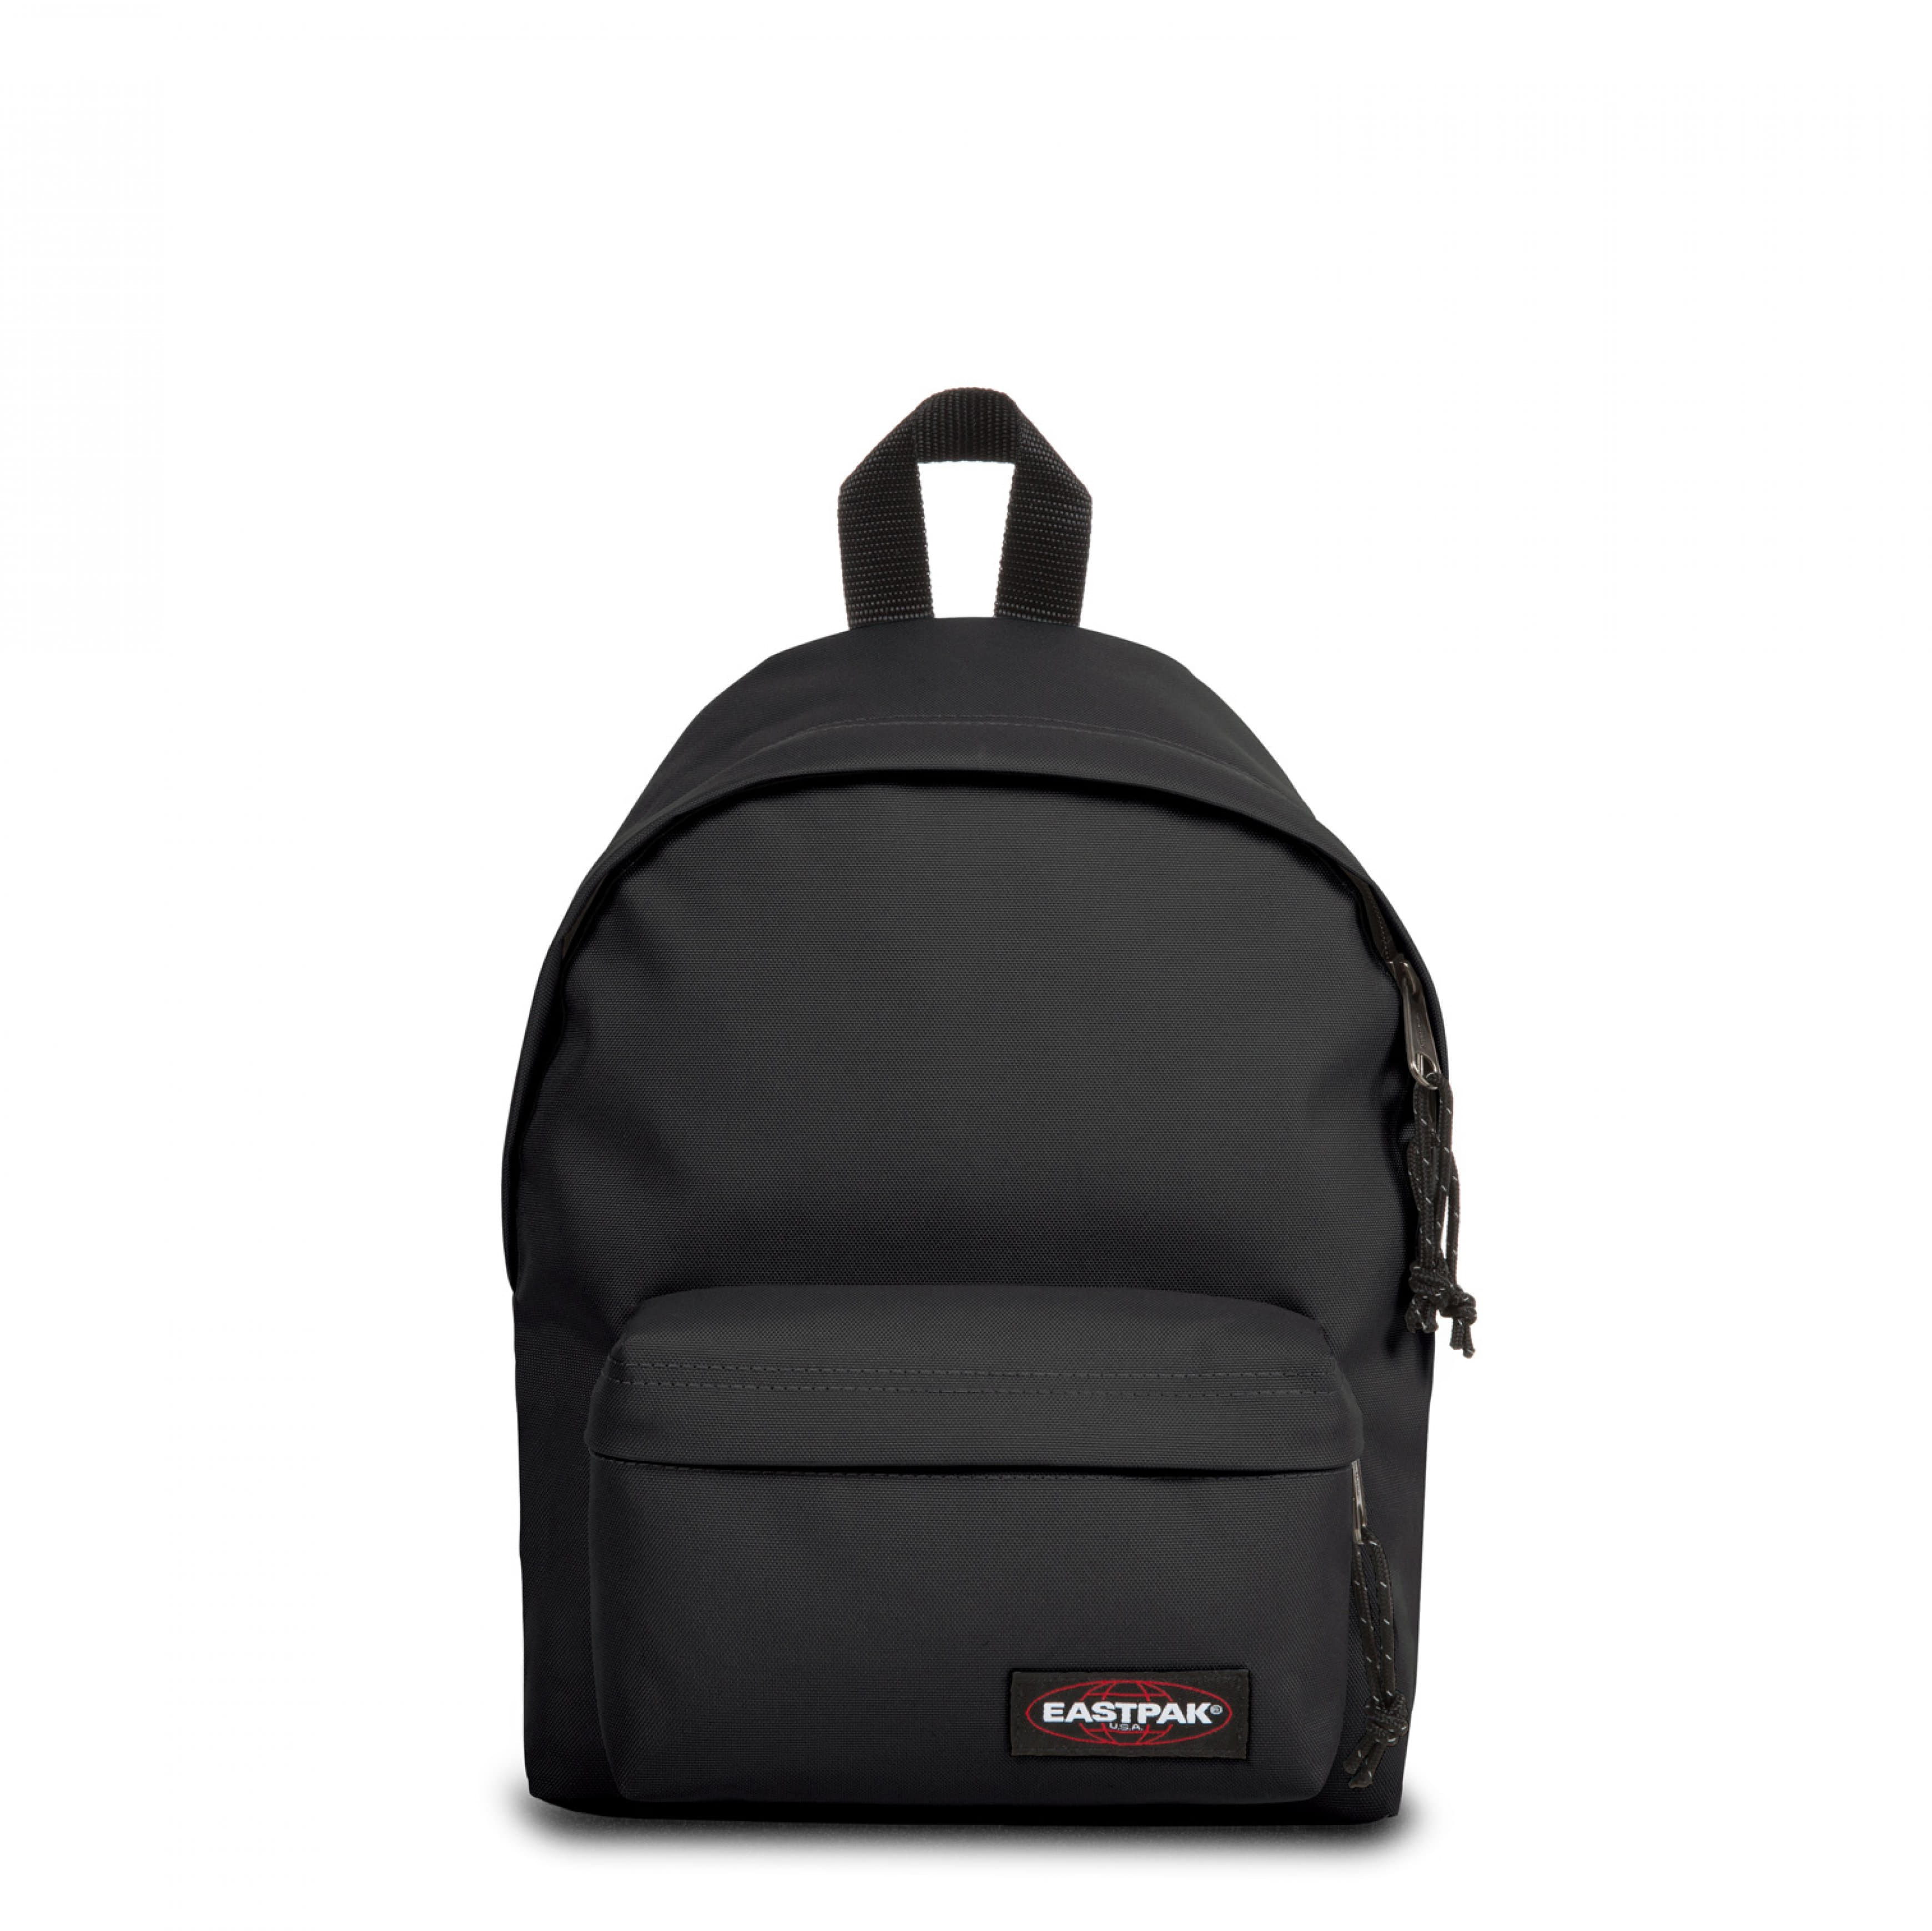 [EASTPAK] AUTHENTIC 백팩 오르빗 EKCBA01 8